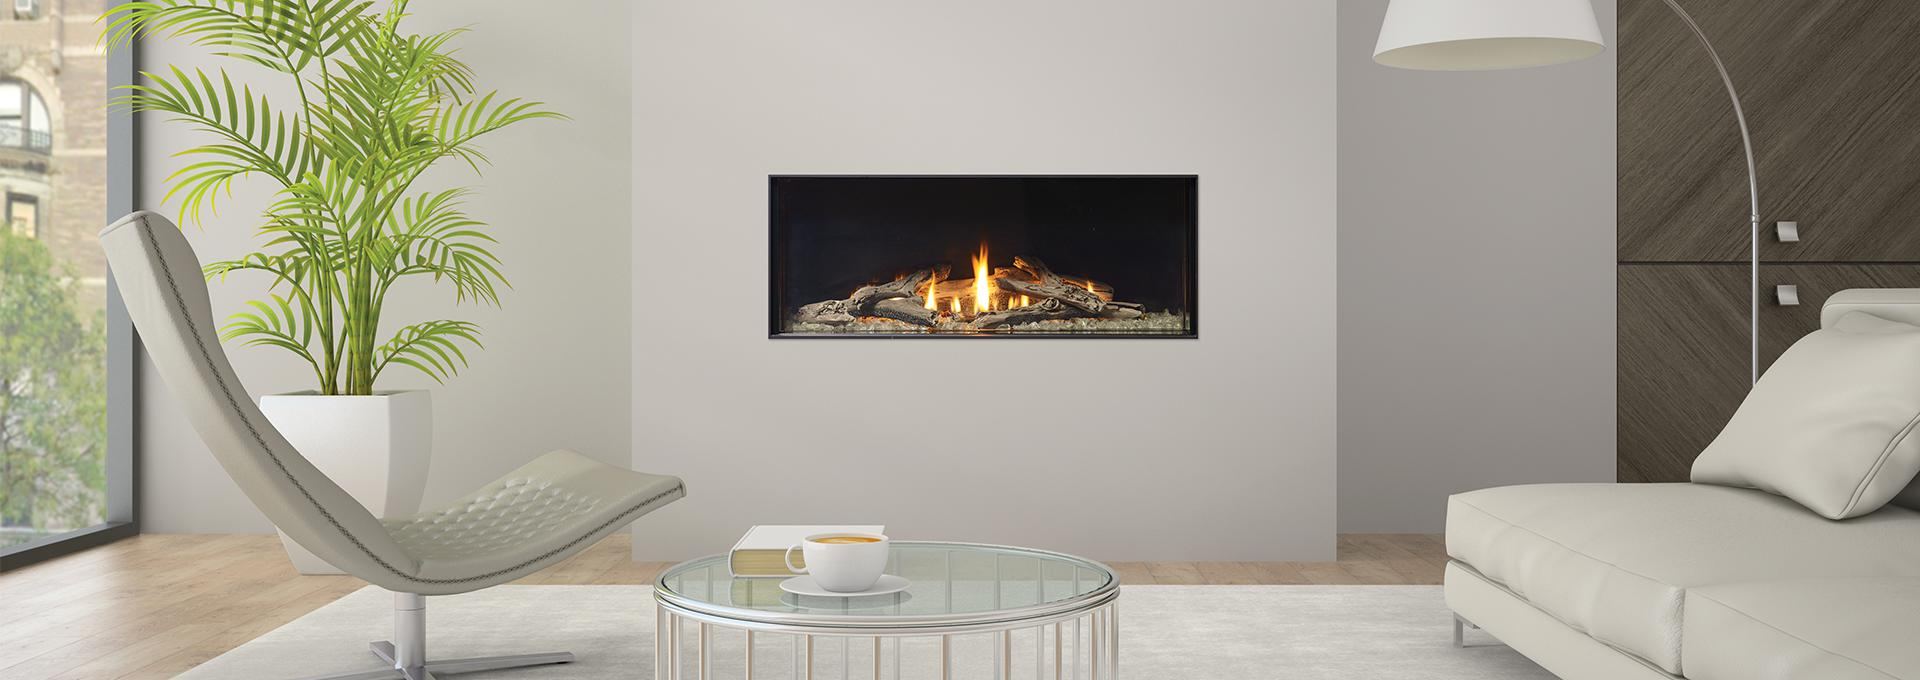 fireplaces bathroom wall contemporary fireplace gas products